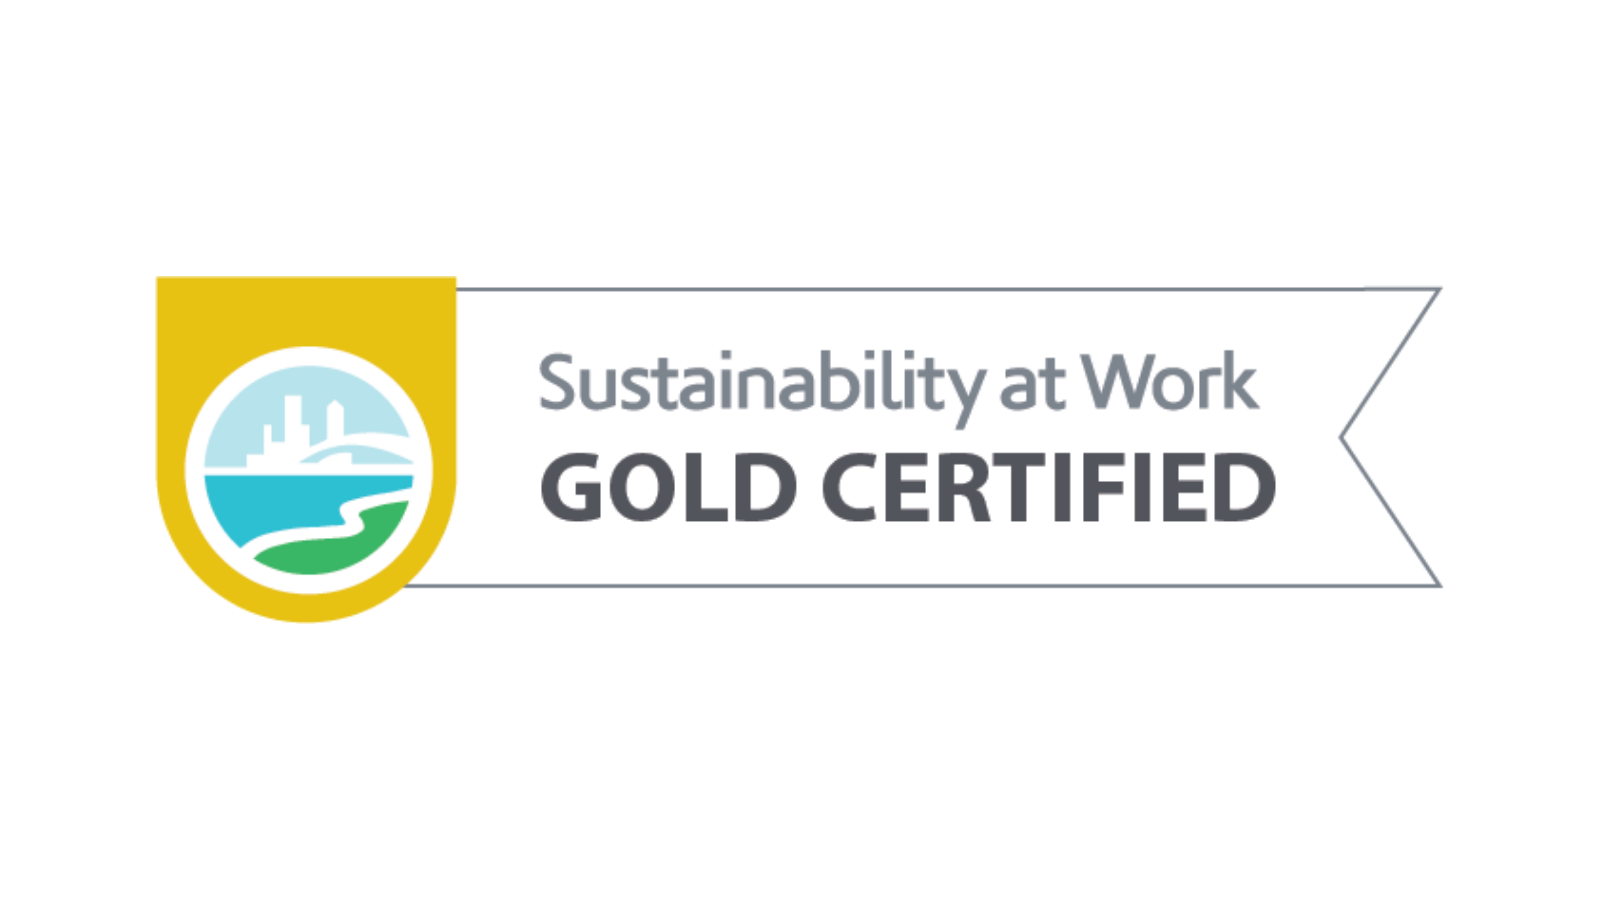 Sustainability at Work Gold Certification